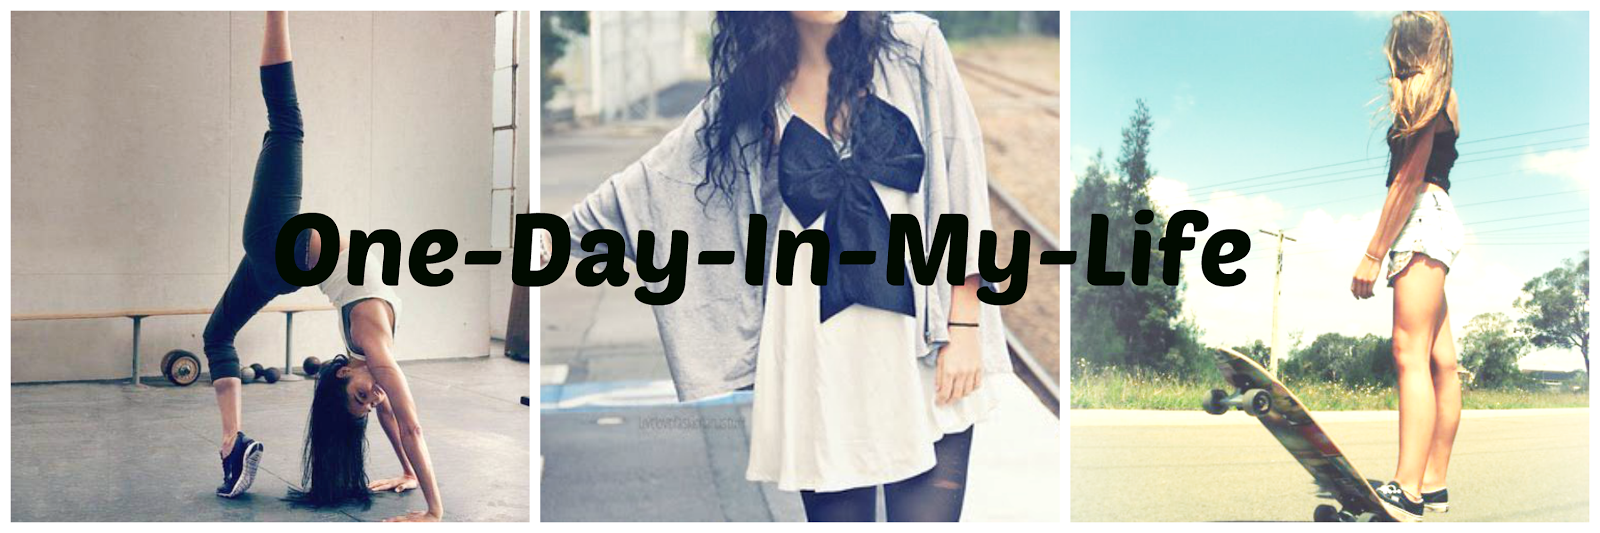 One-Day-In-My-Life